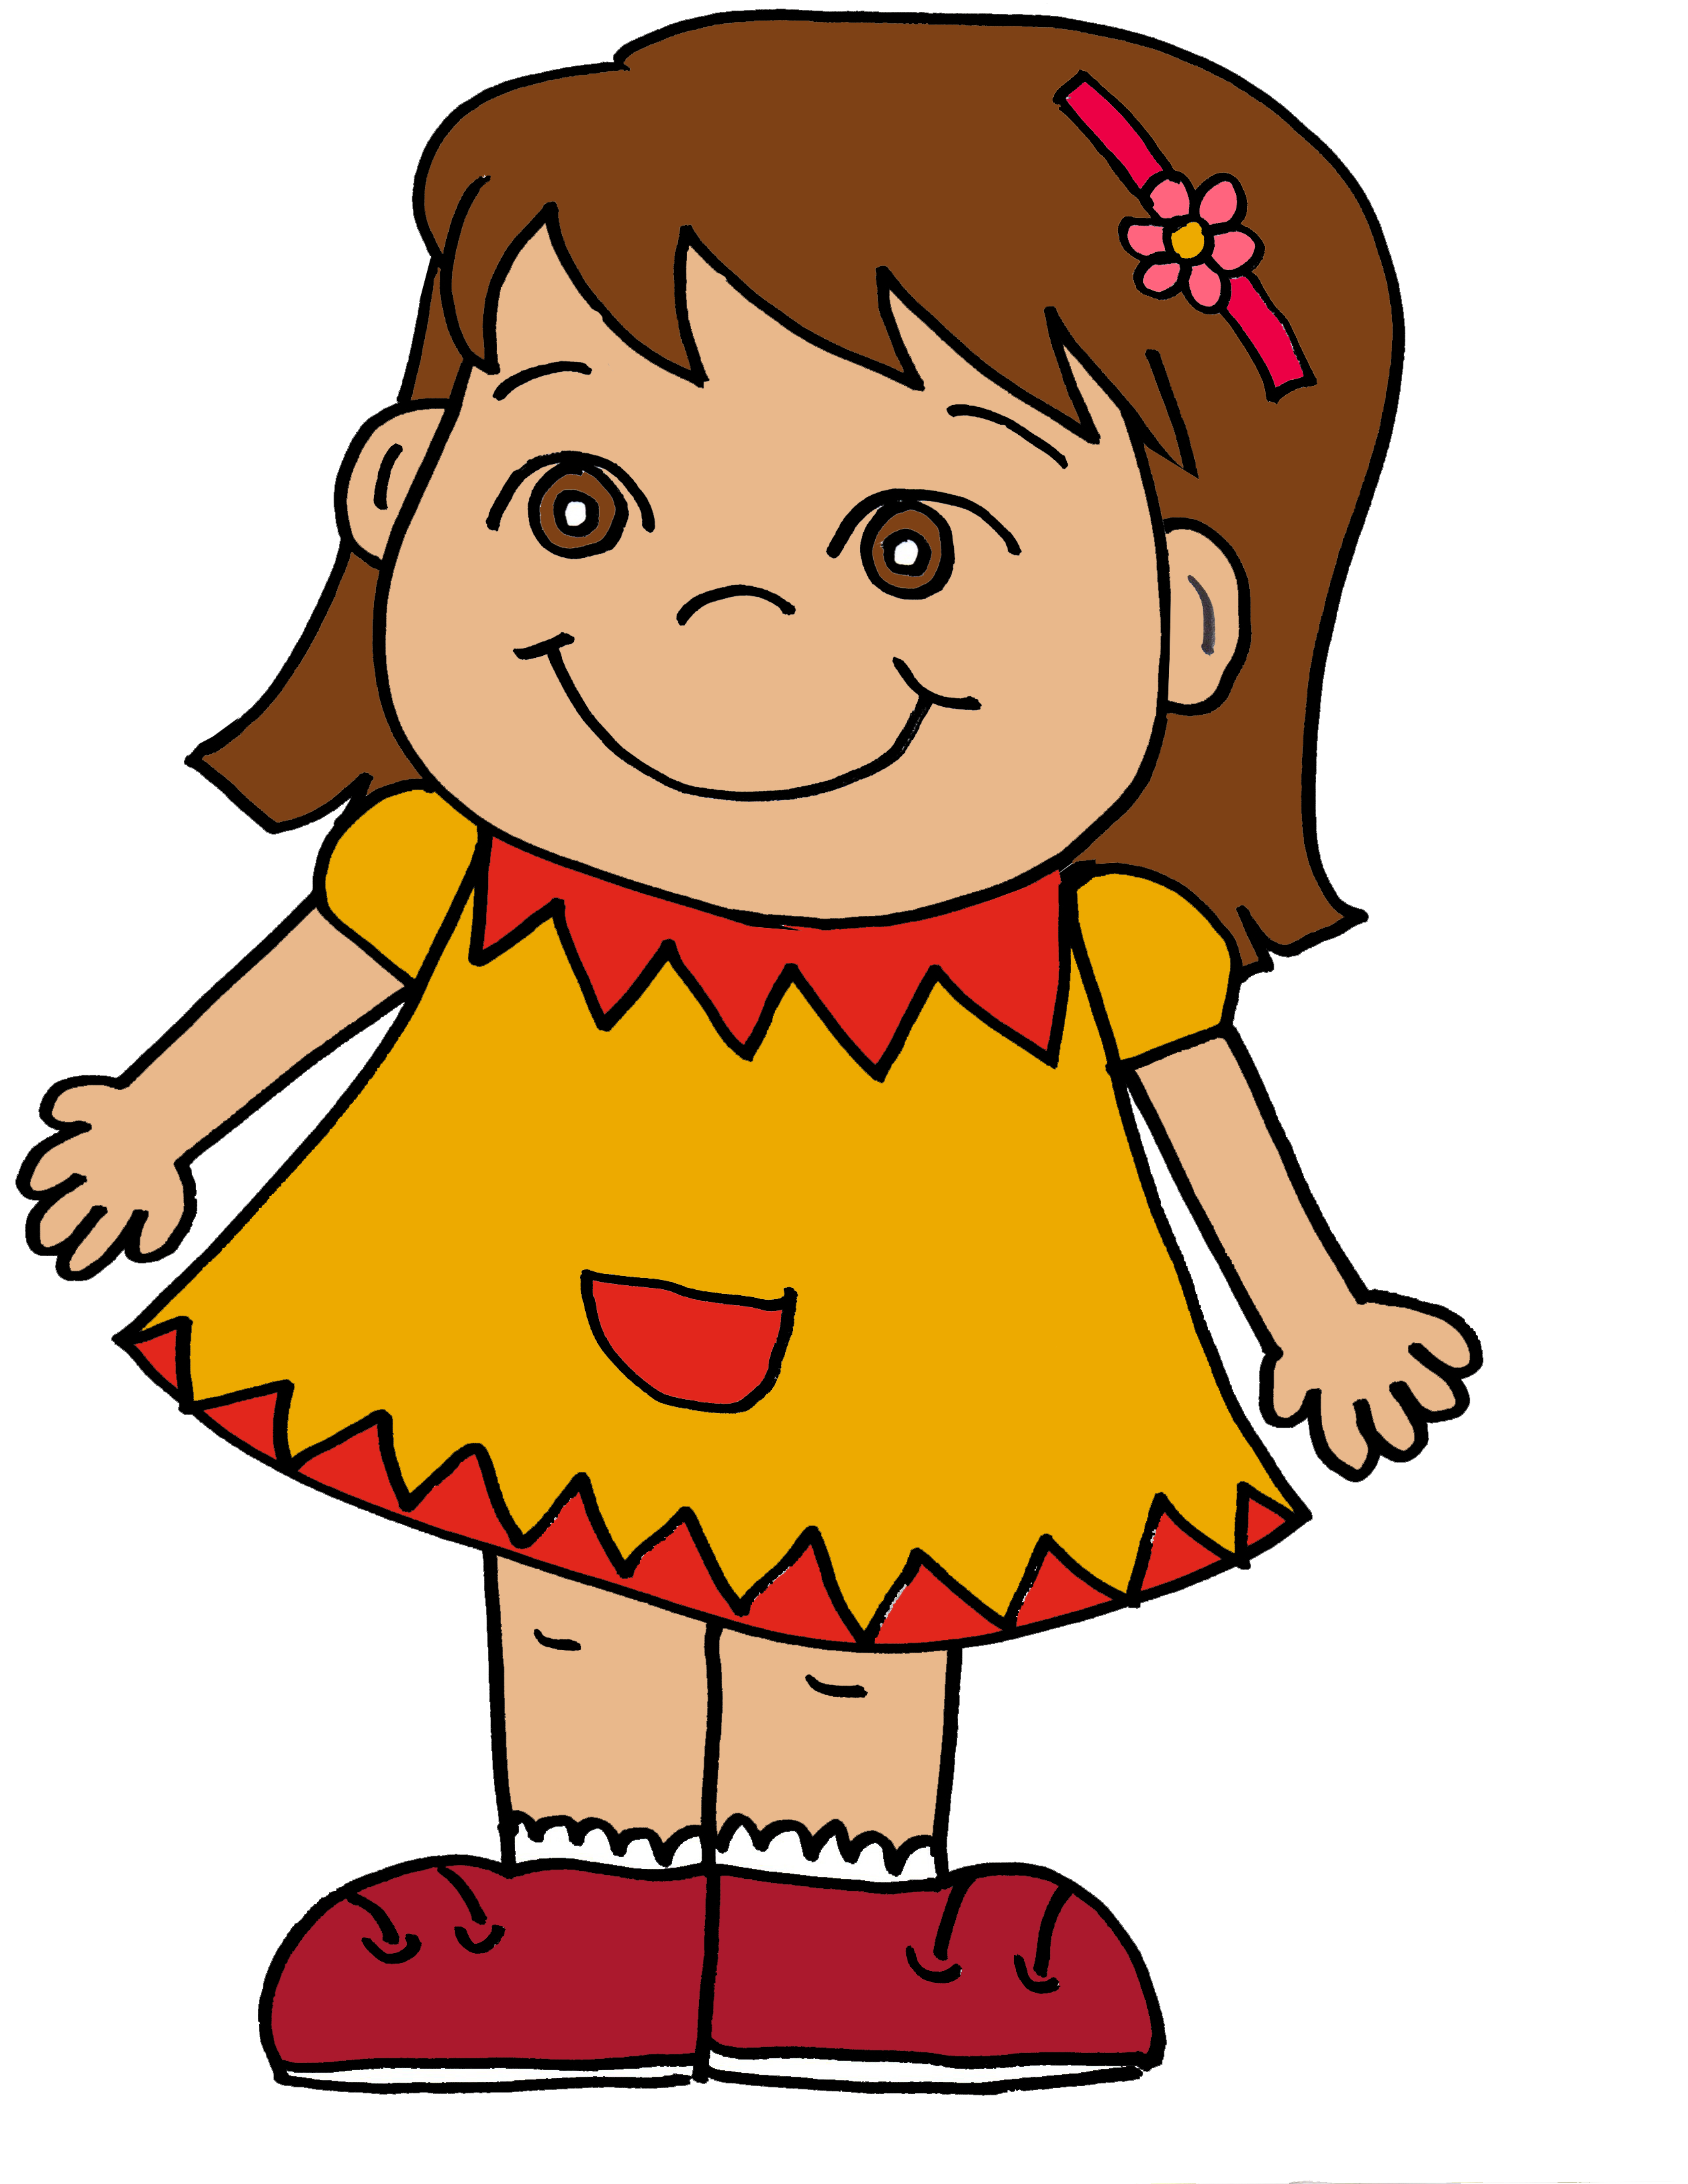 Free Girl Cliparts, Download Free Clip Art, Free Clip Art on.